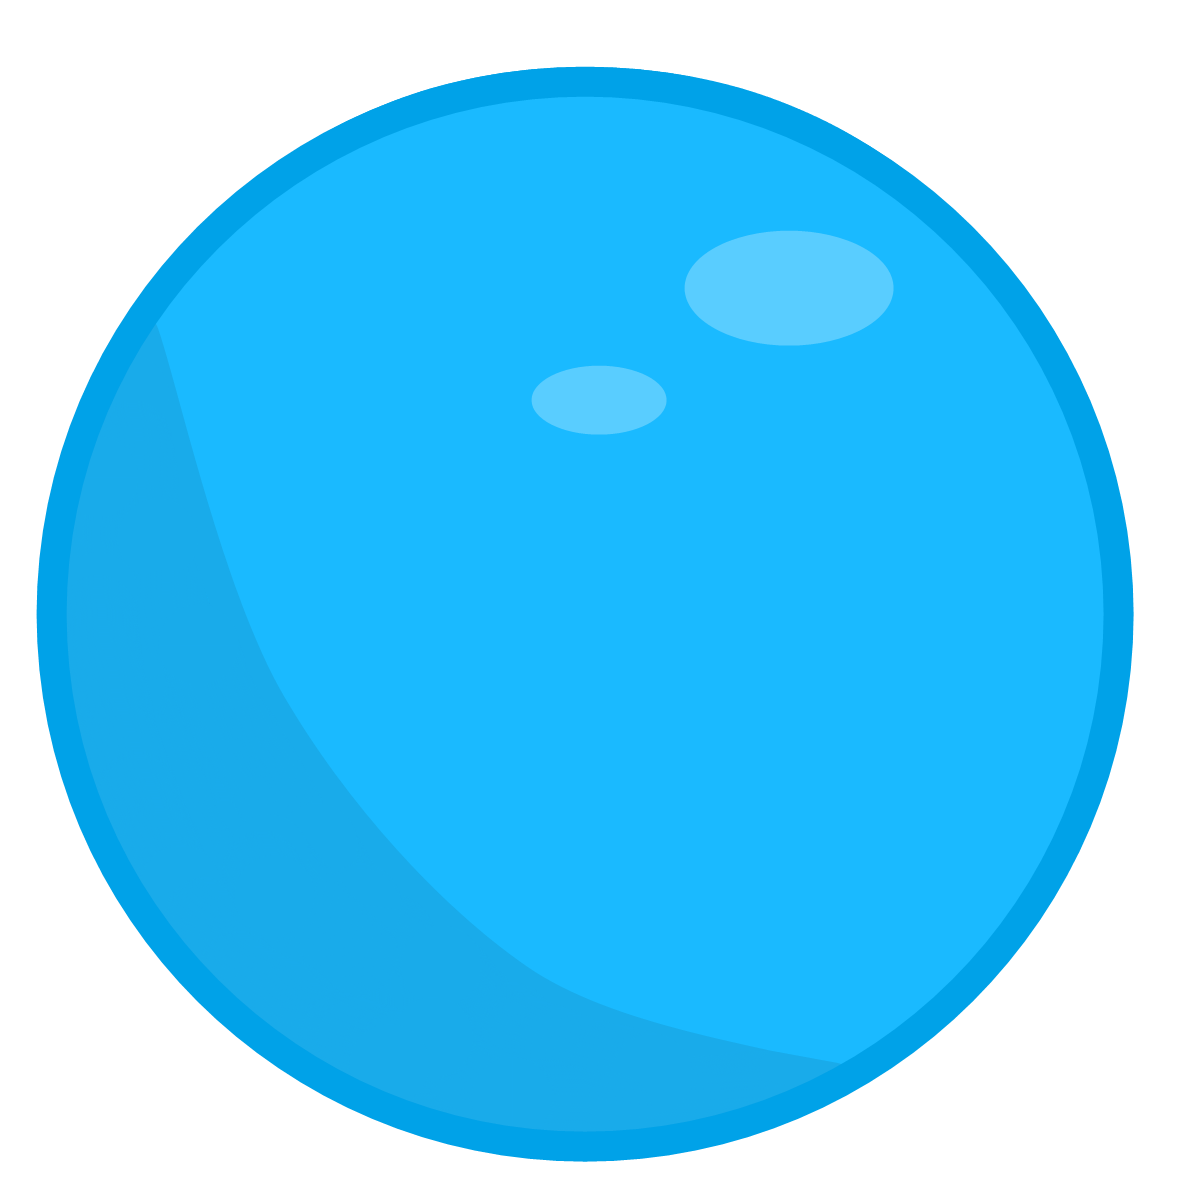 Randome clipart bouncy ball #5